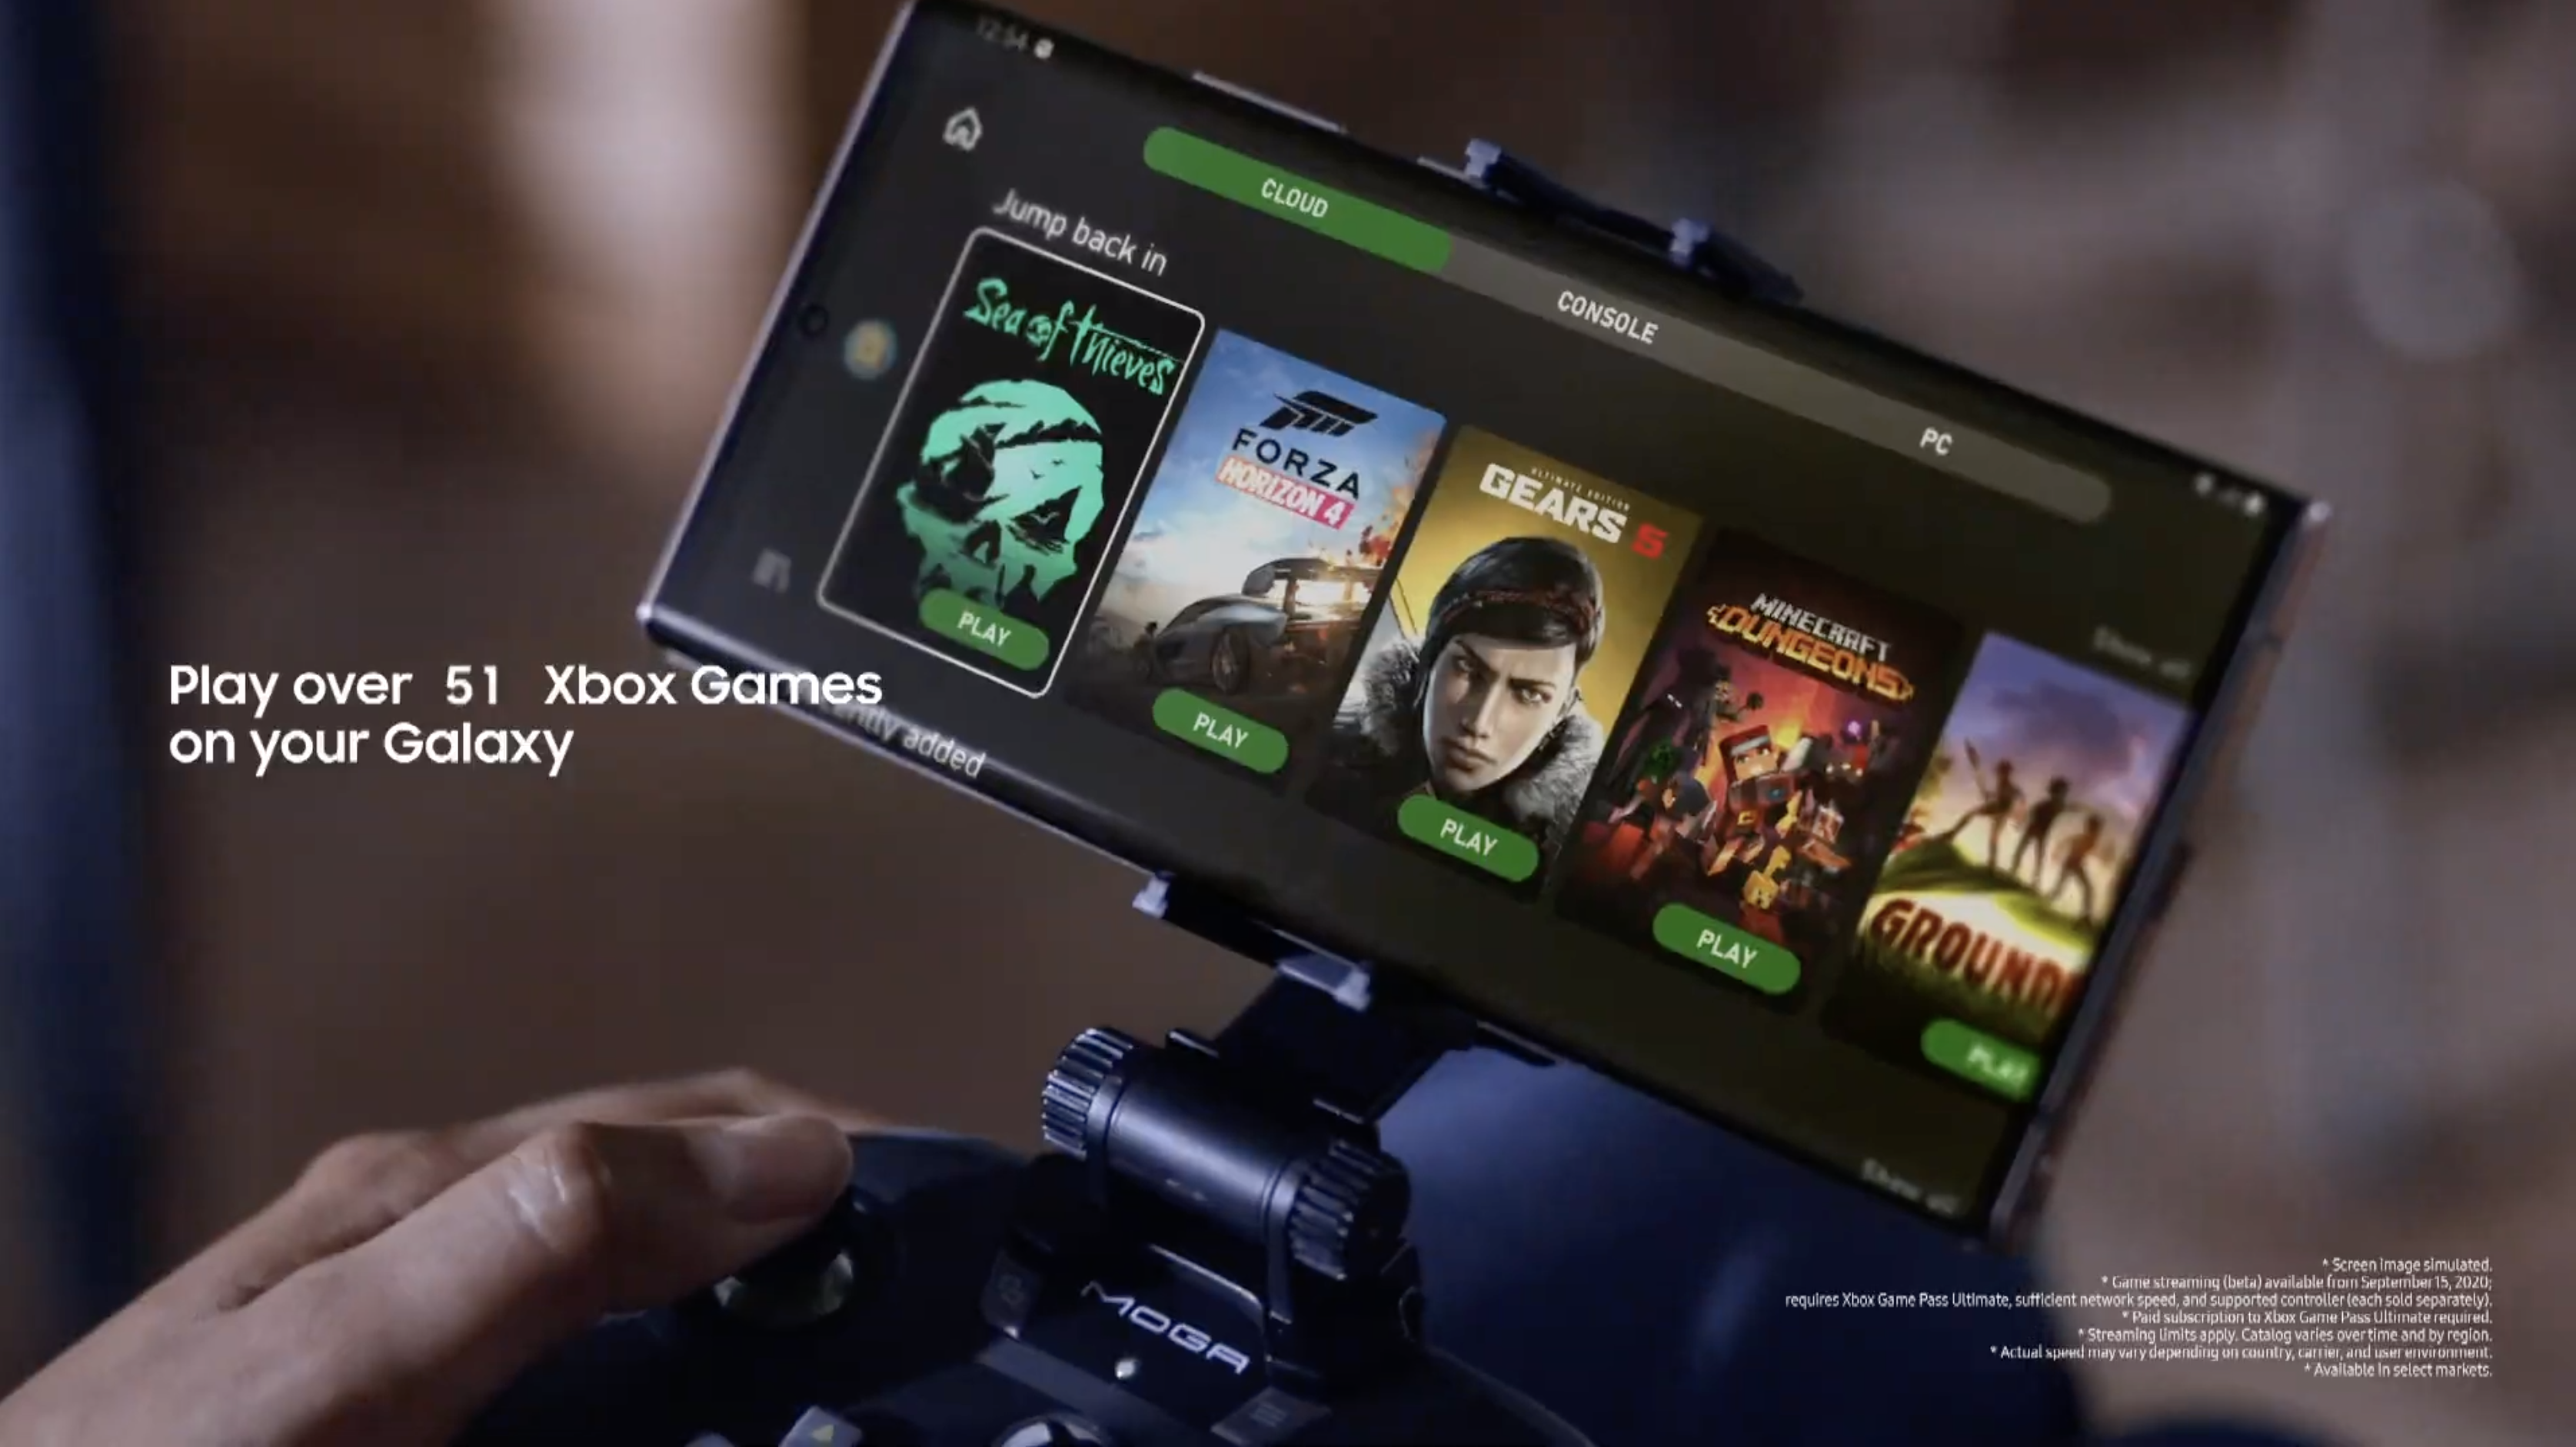 Samsung Galaxy Note 20 and Xbox Game Pass — what you get and how it works |  Tom's Guide